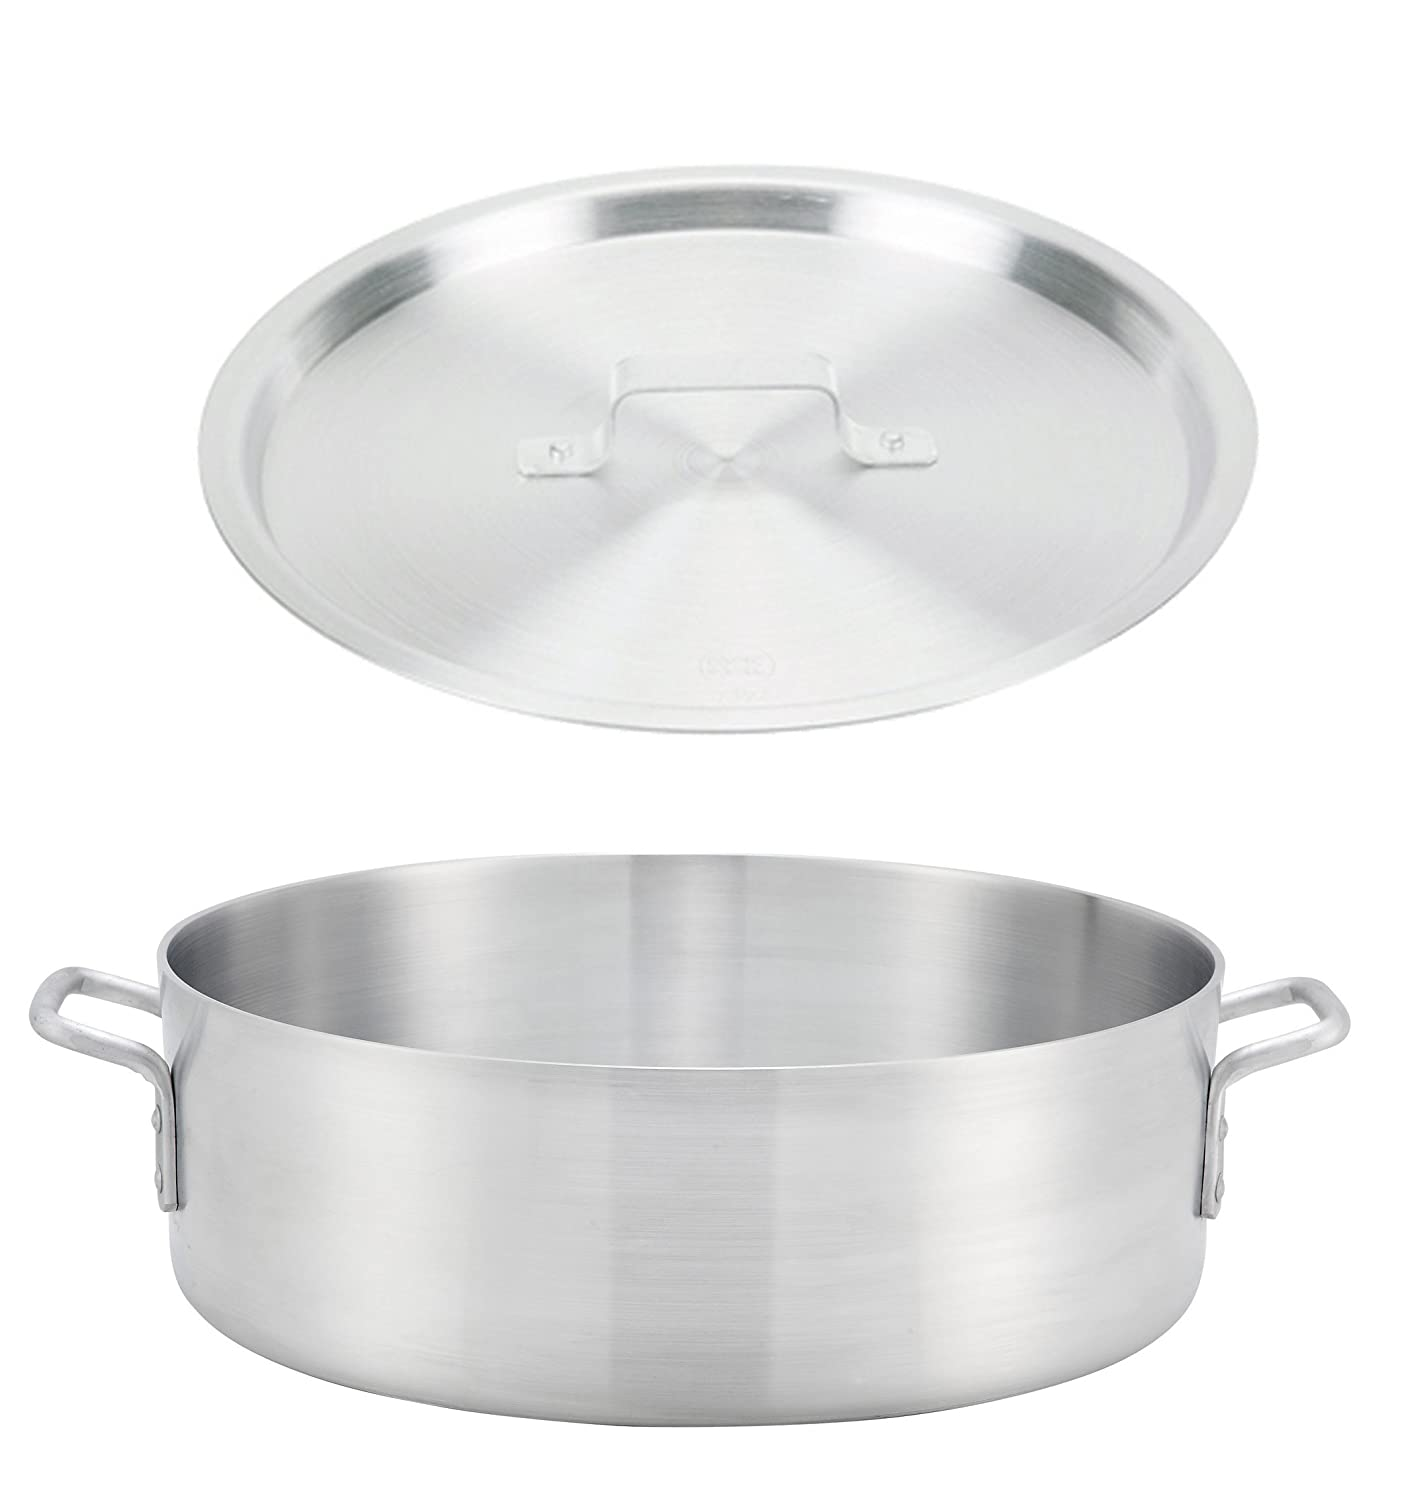 "Winco ALB-40, 40-Quart 22.8"" x 6"" Standard Heavy Aluminum Brazier Pan with Cover, Heavy-Duty Commercial Grade Braiser Pan with Lid, NSF ALB-40+ALPC-140"